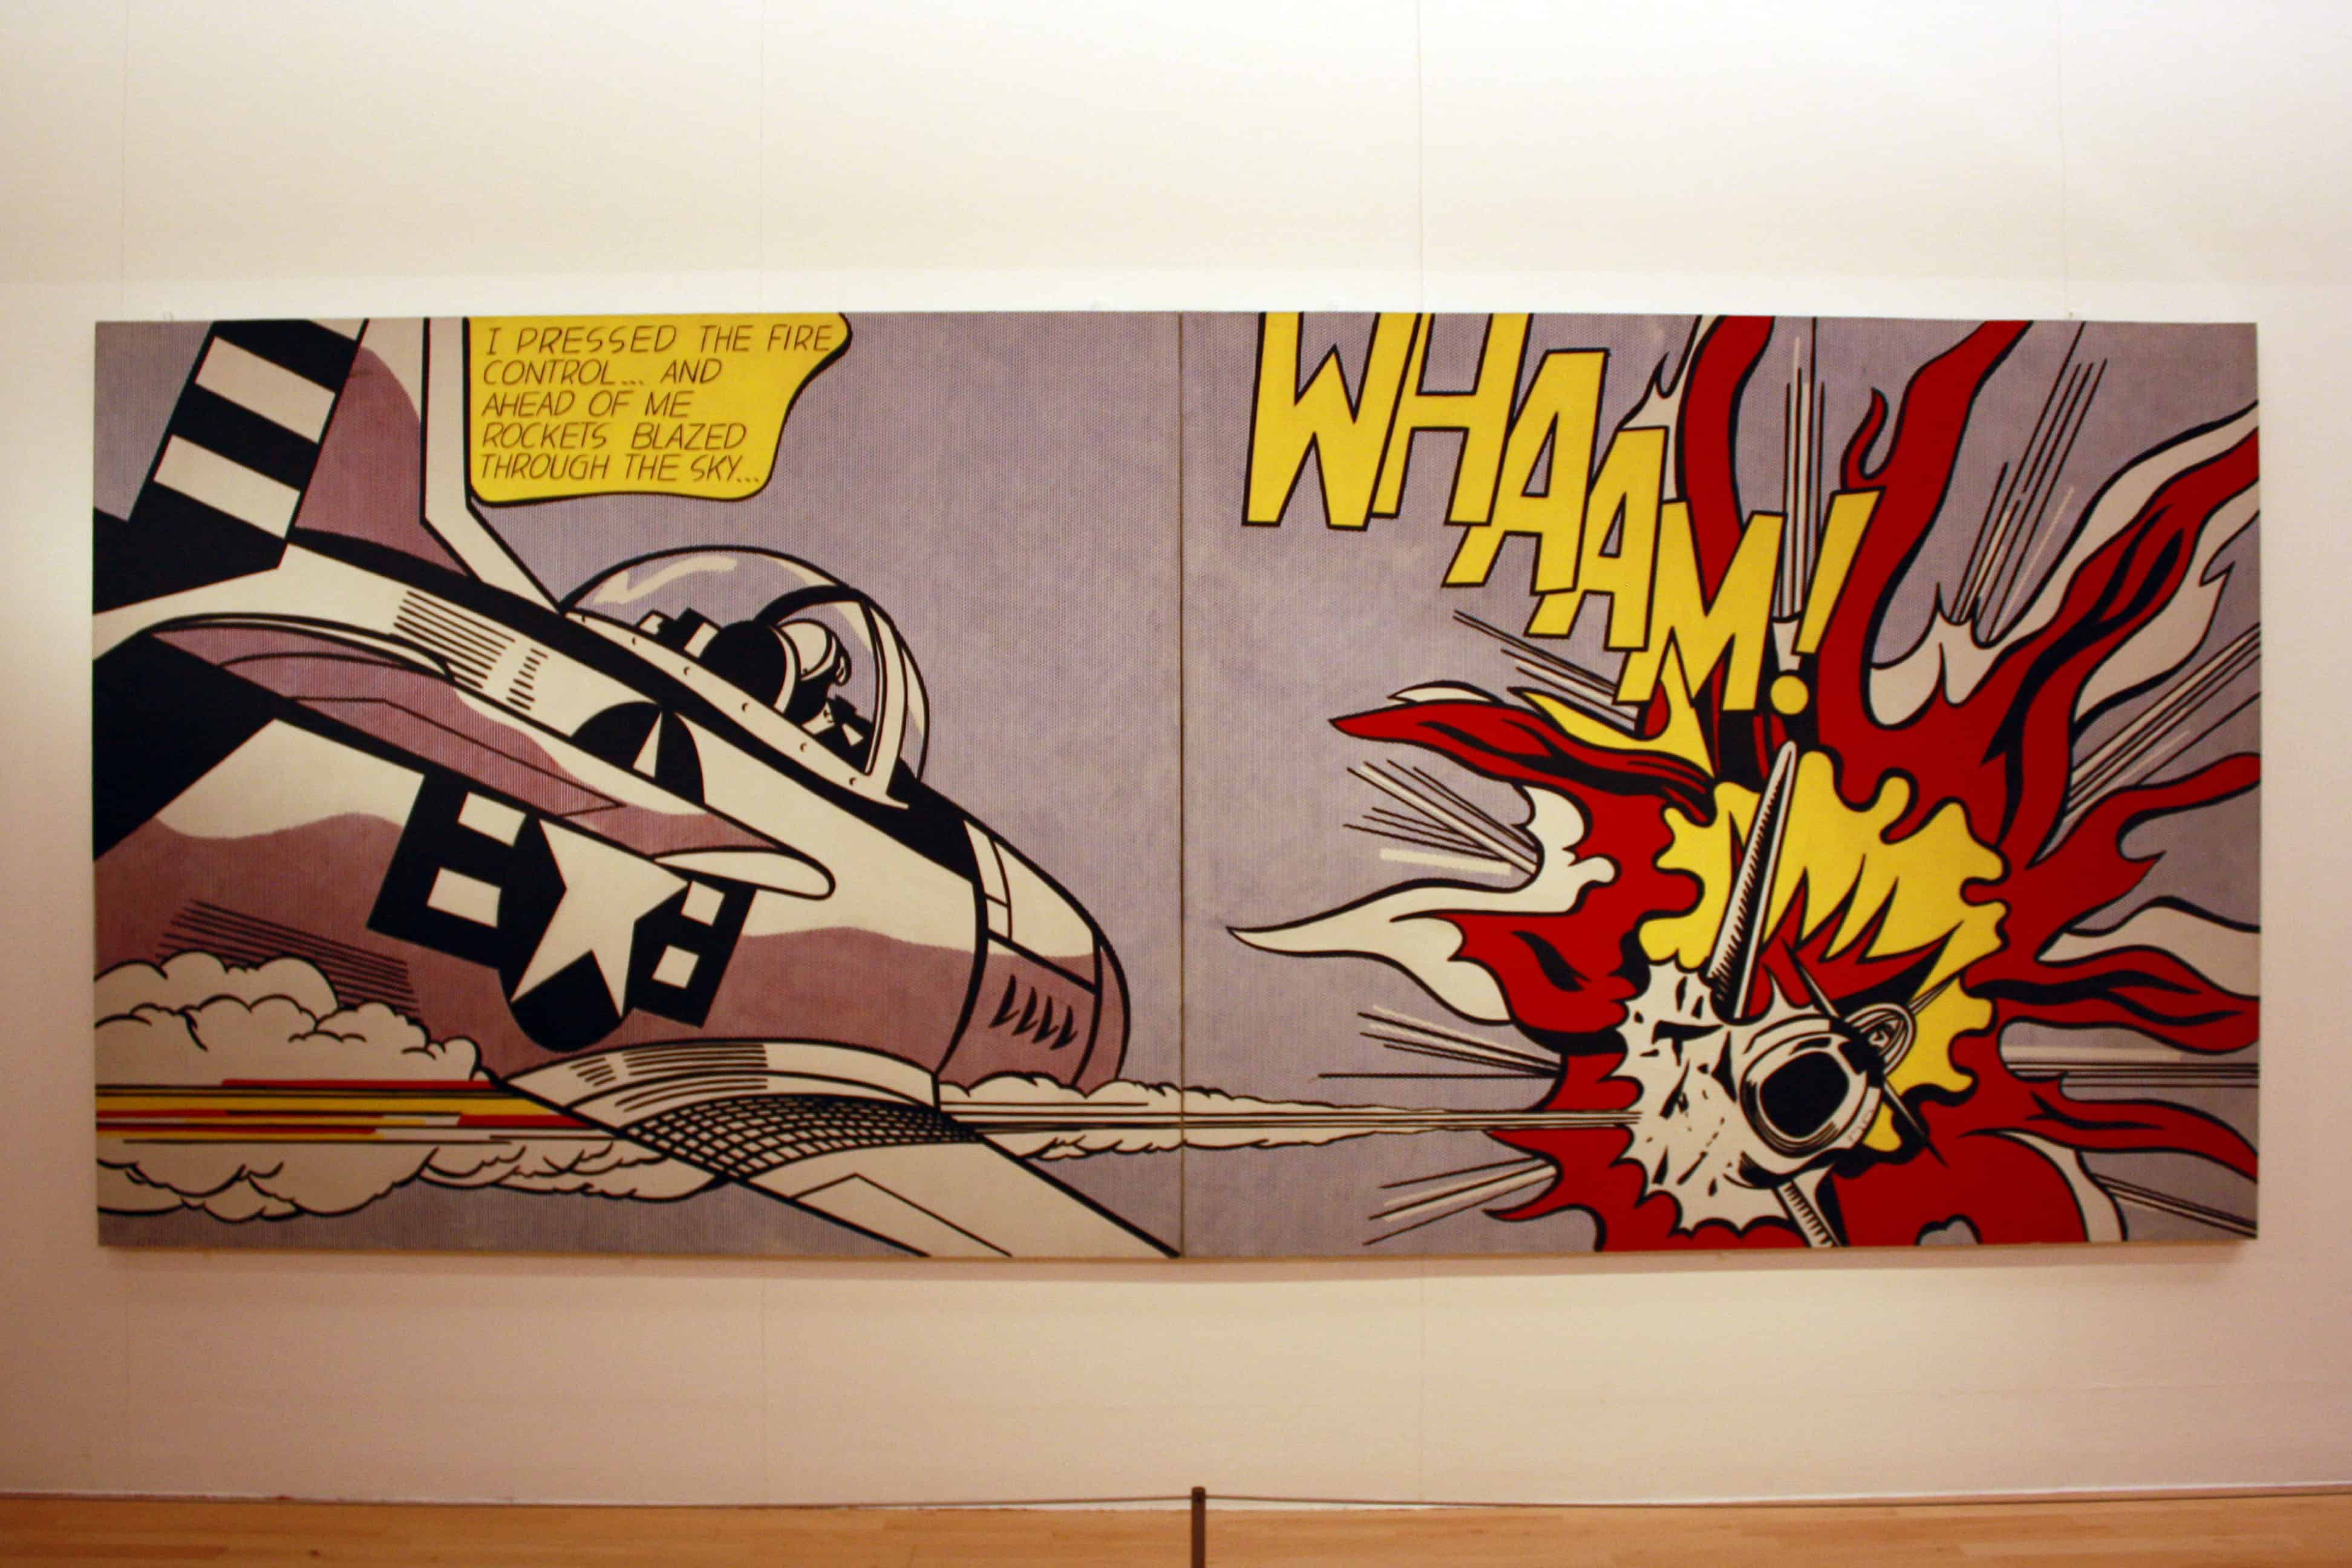 Roy Lichtenstein - Whaam! at Tate Liverpool